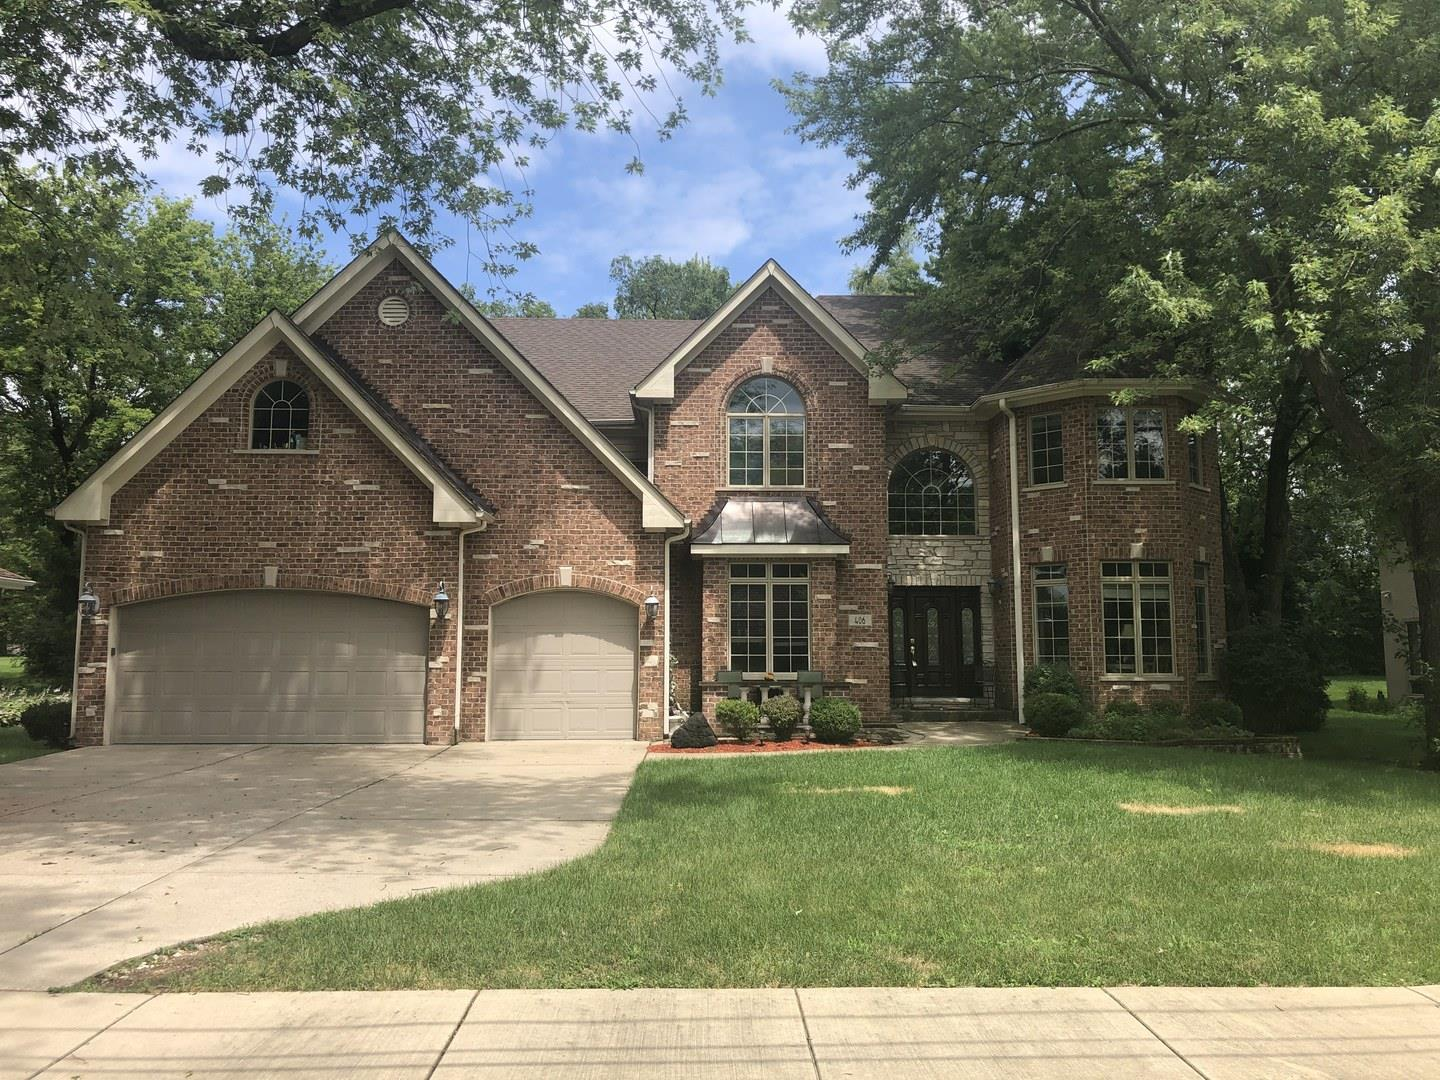 406 61ST Street, Willowbrook, IL 60527 - #: 10769360